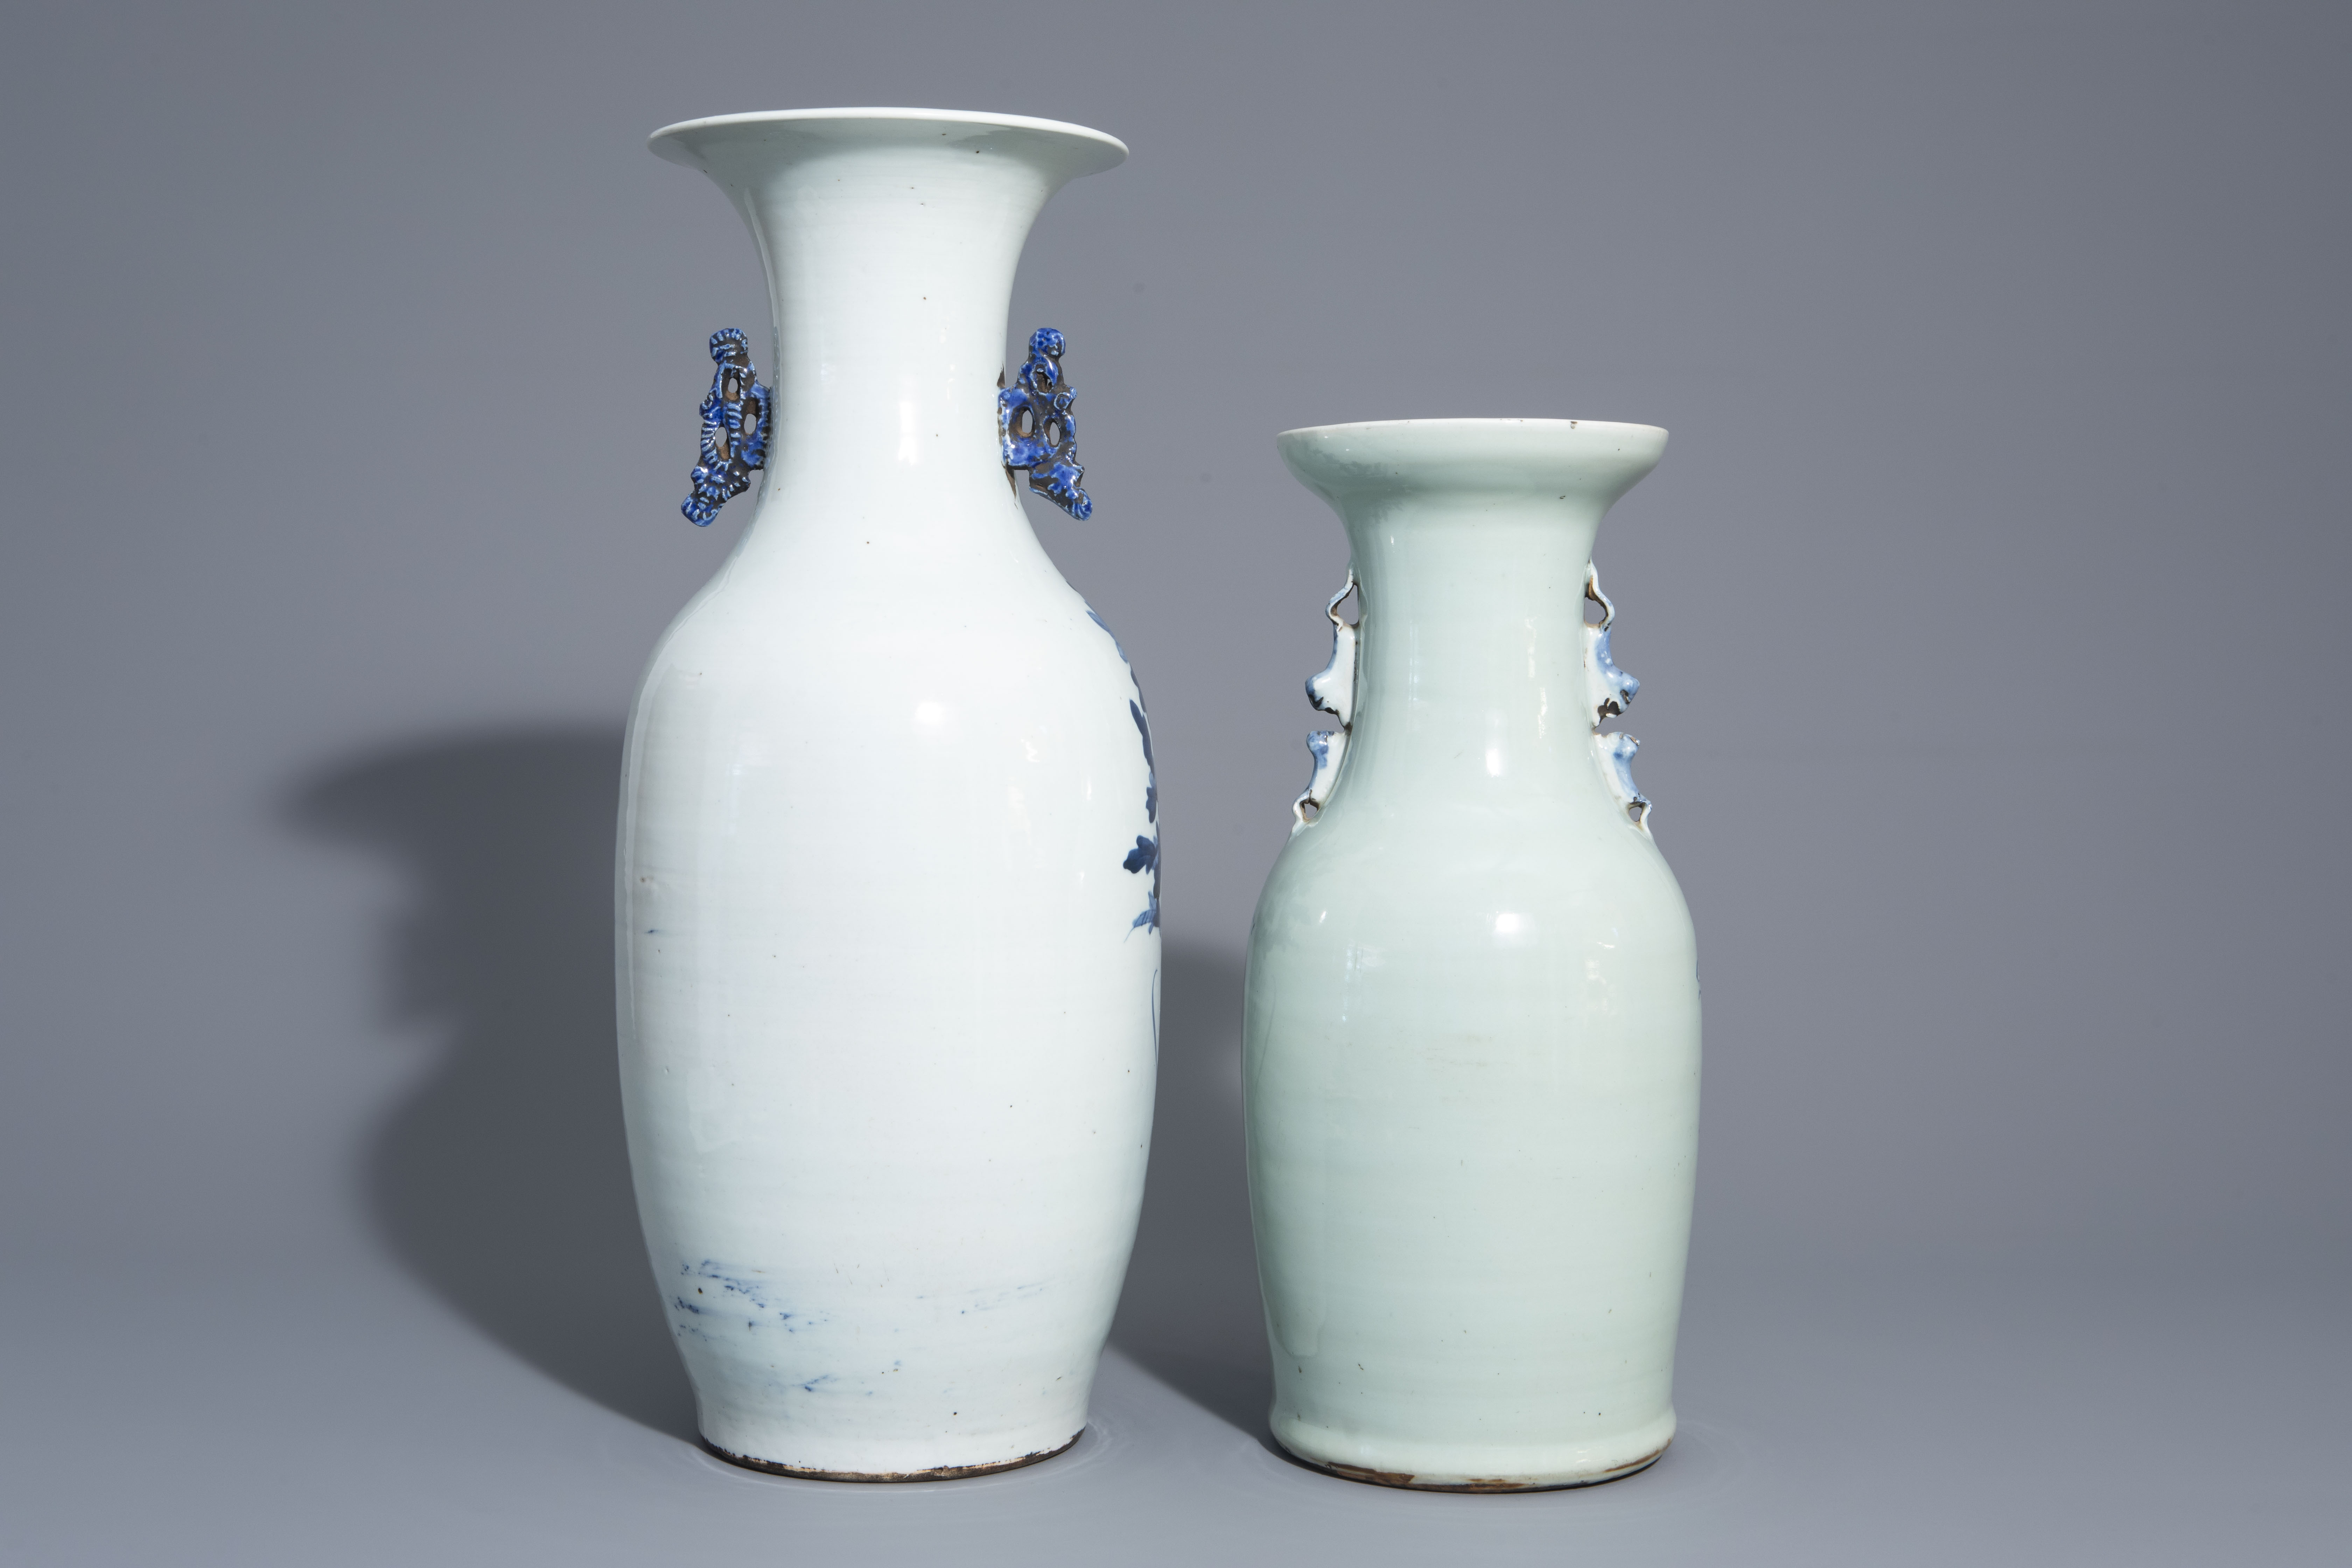 Two Chinese blue and white vases with mythological animals, 19th C. - Image 4 of 7